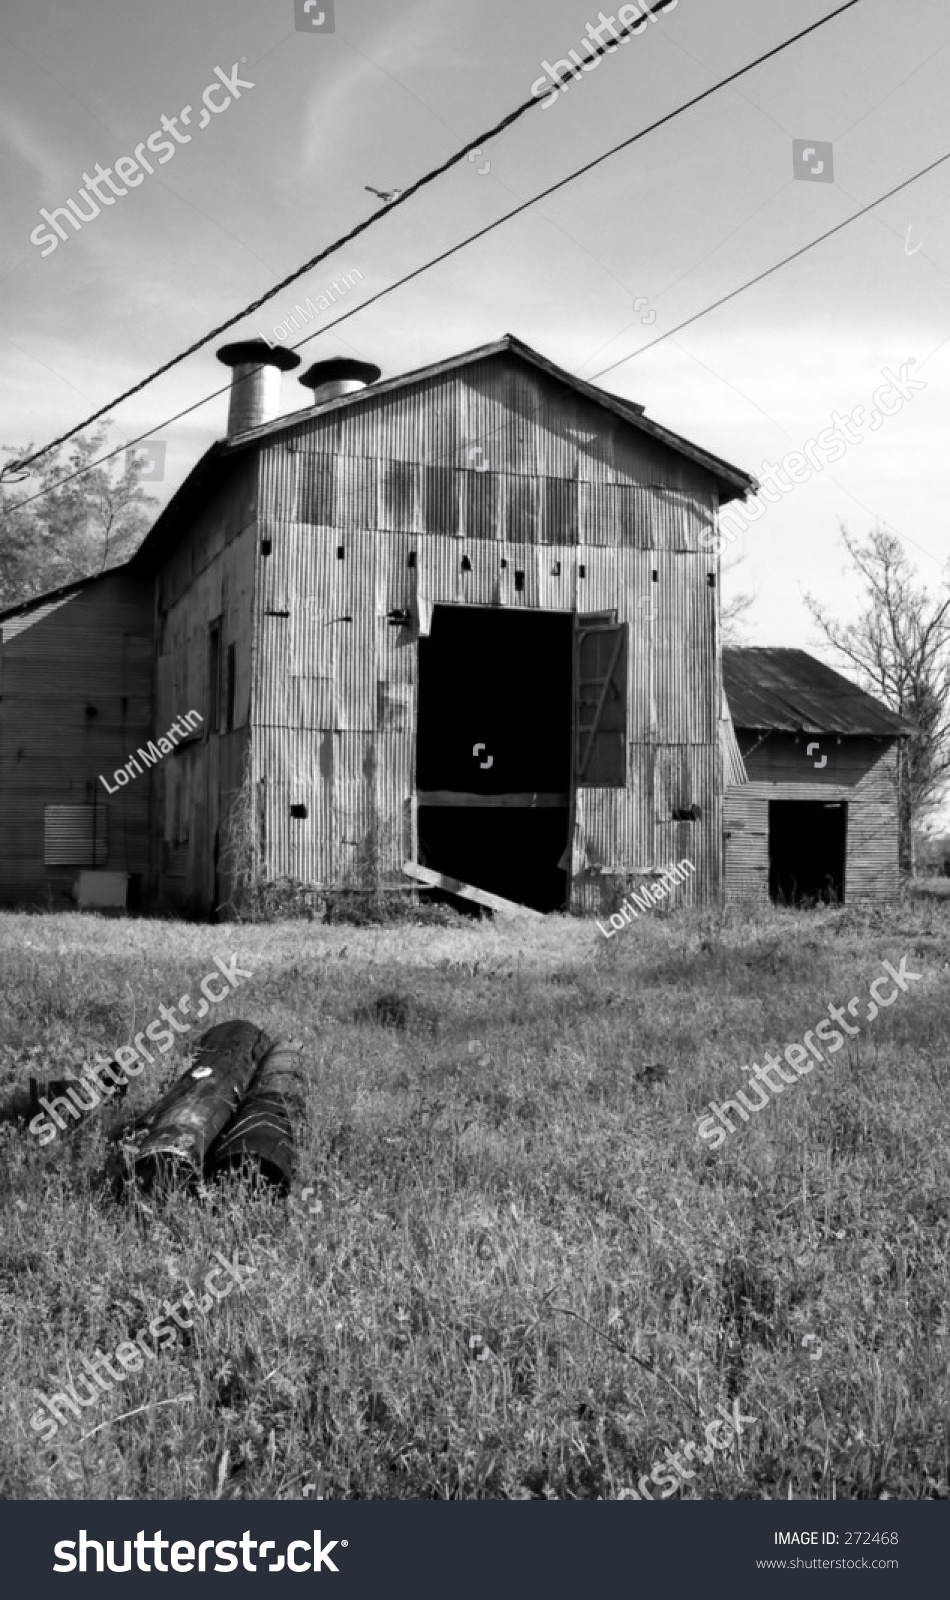 Old Barn Black White Stock Photo Edit Now 272468